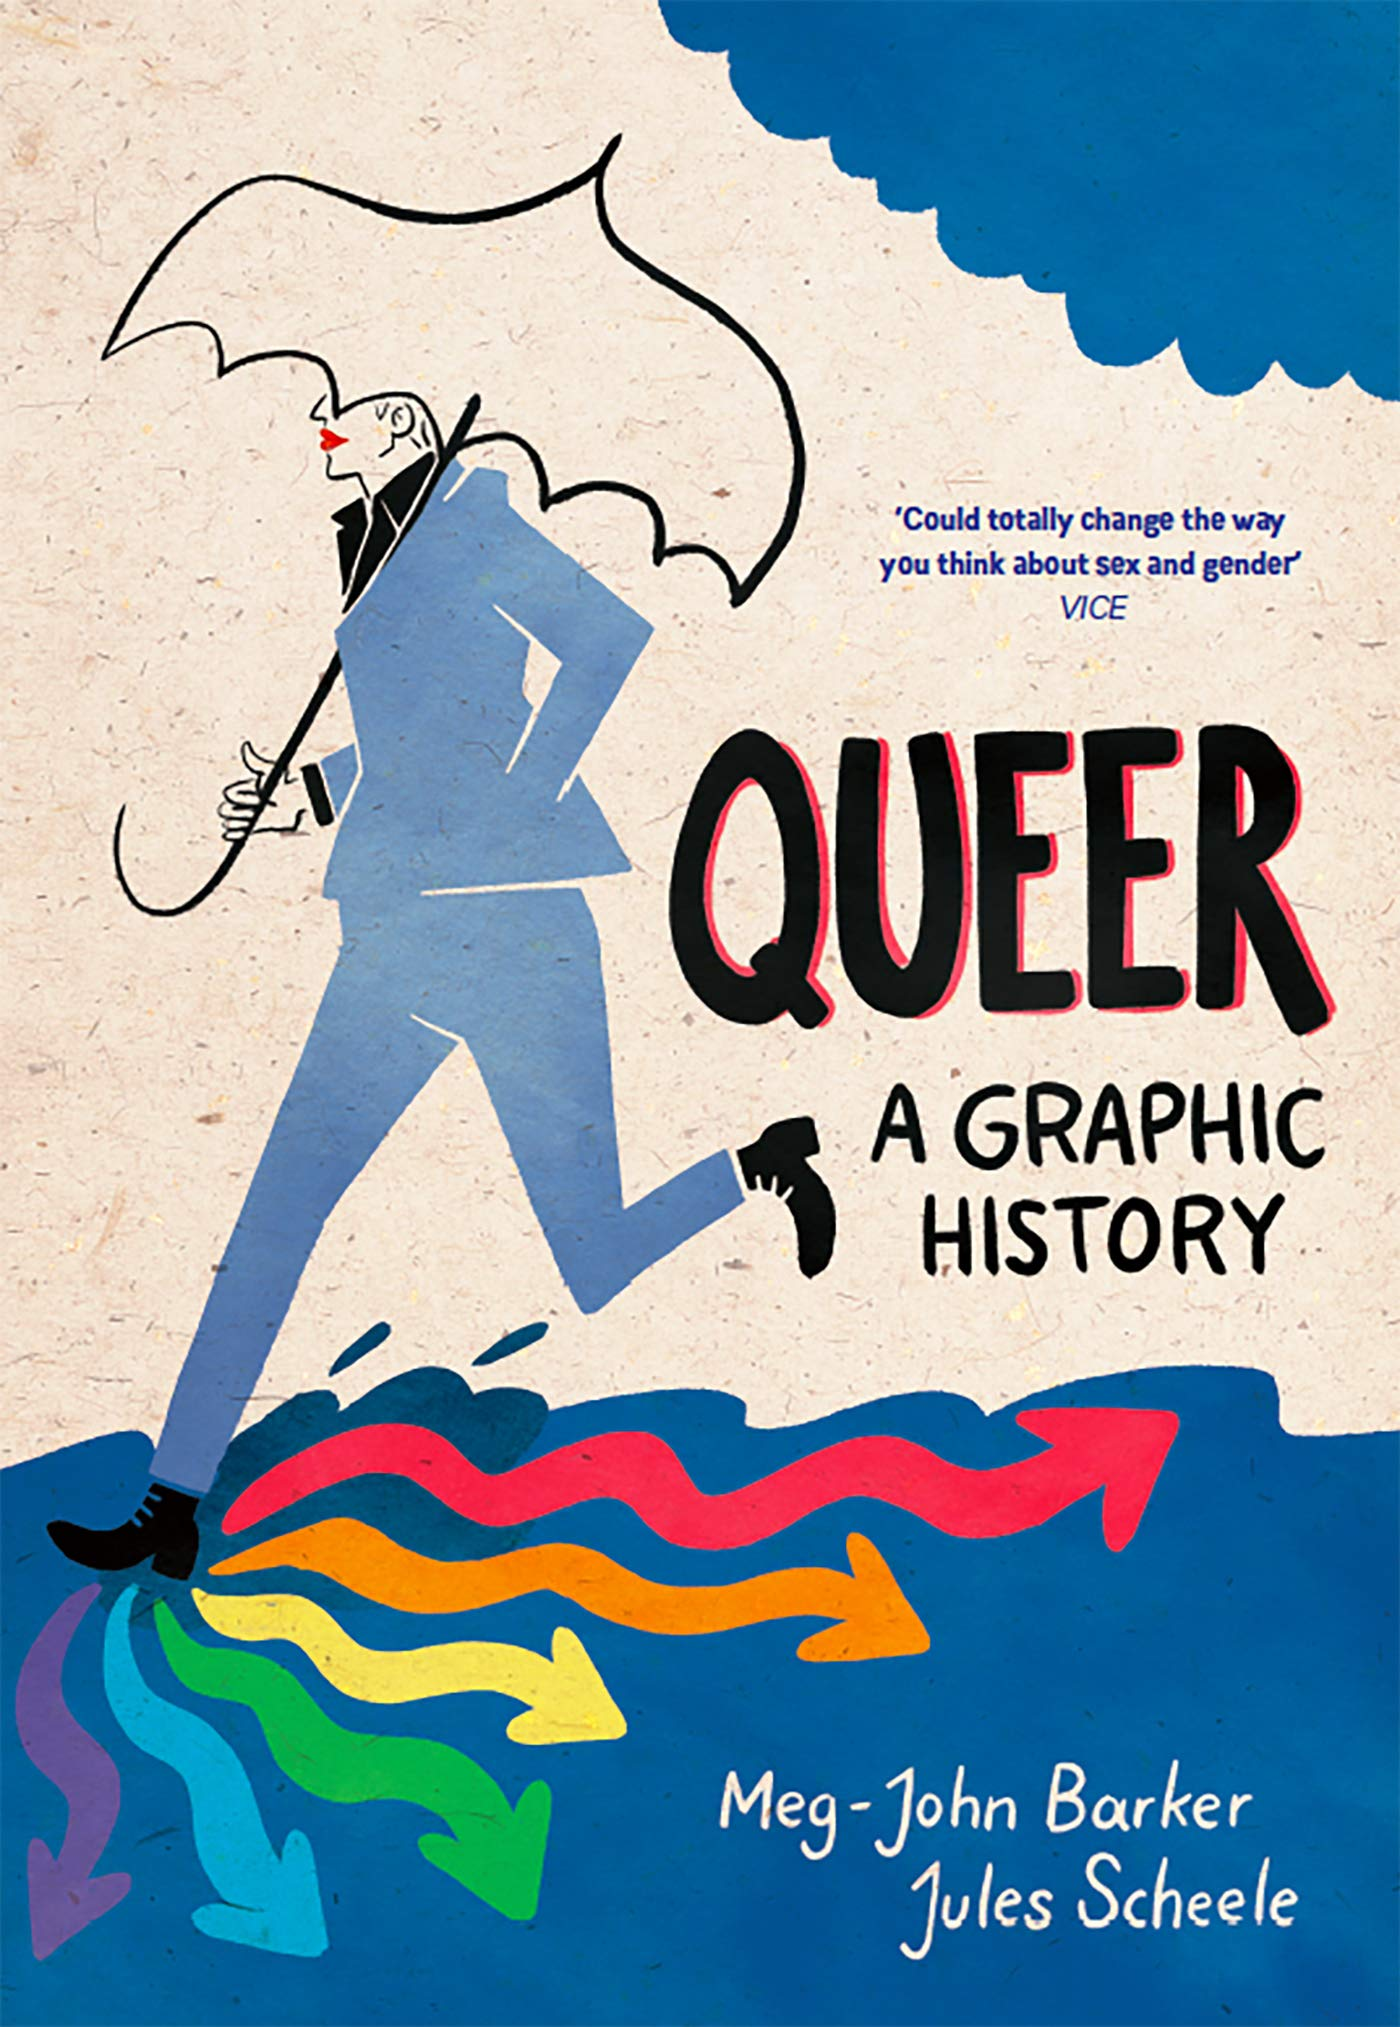 Cover image of the book Queer: A Graphic History, showing art of a person in a suit holding an umbrella and stepping quickly into a puddle, where their foot steps are squiggly arrows in rainbow colours pointing in different directions